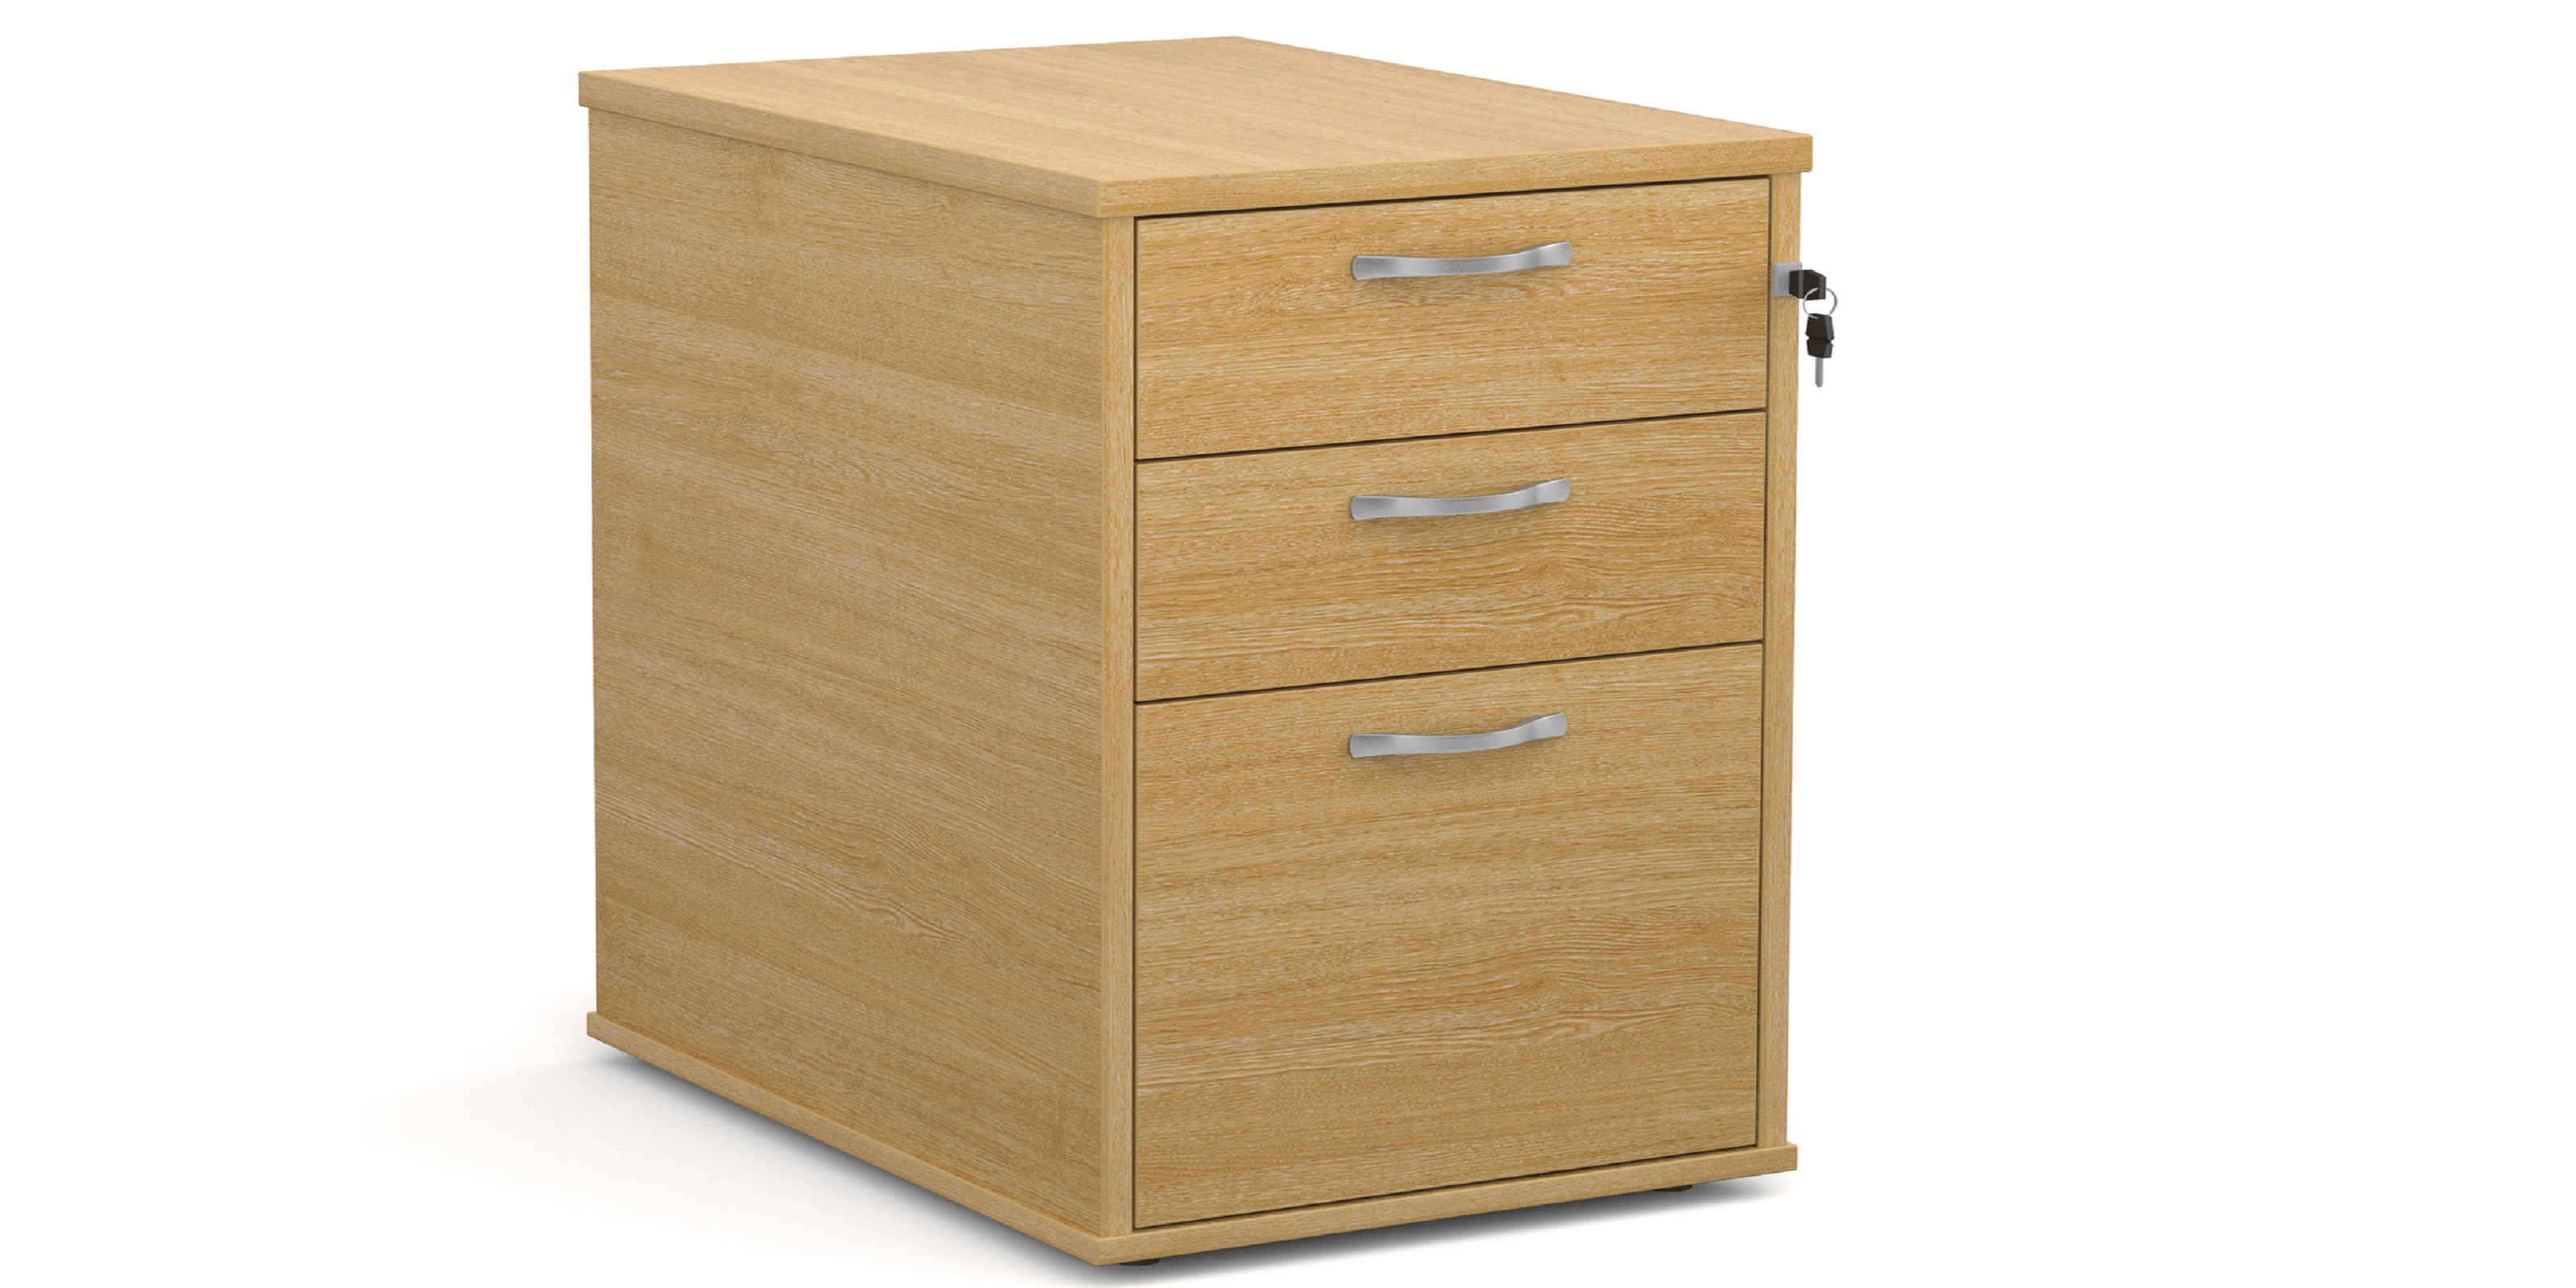 Primary Storage Desk High Pedestal 3 Drawer Image